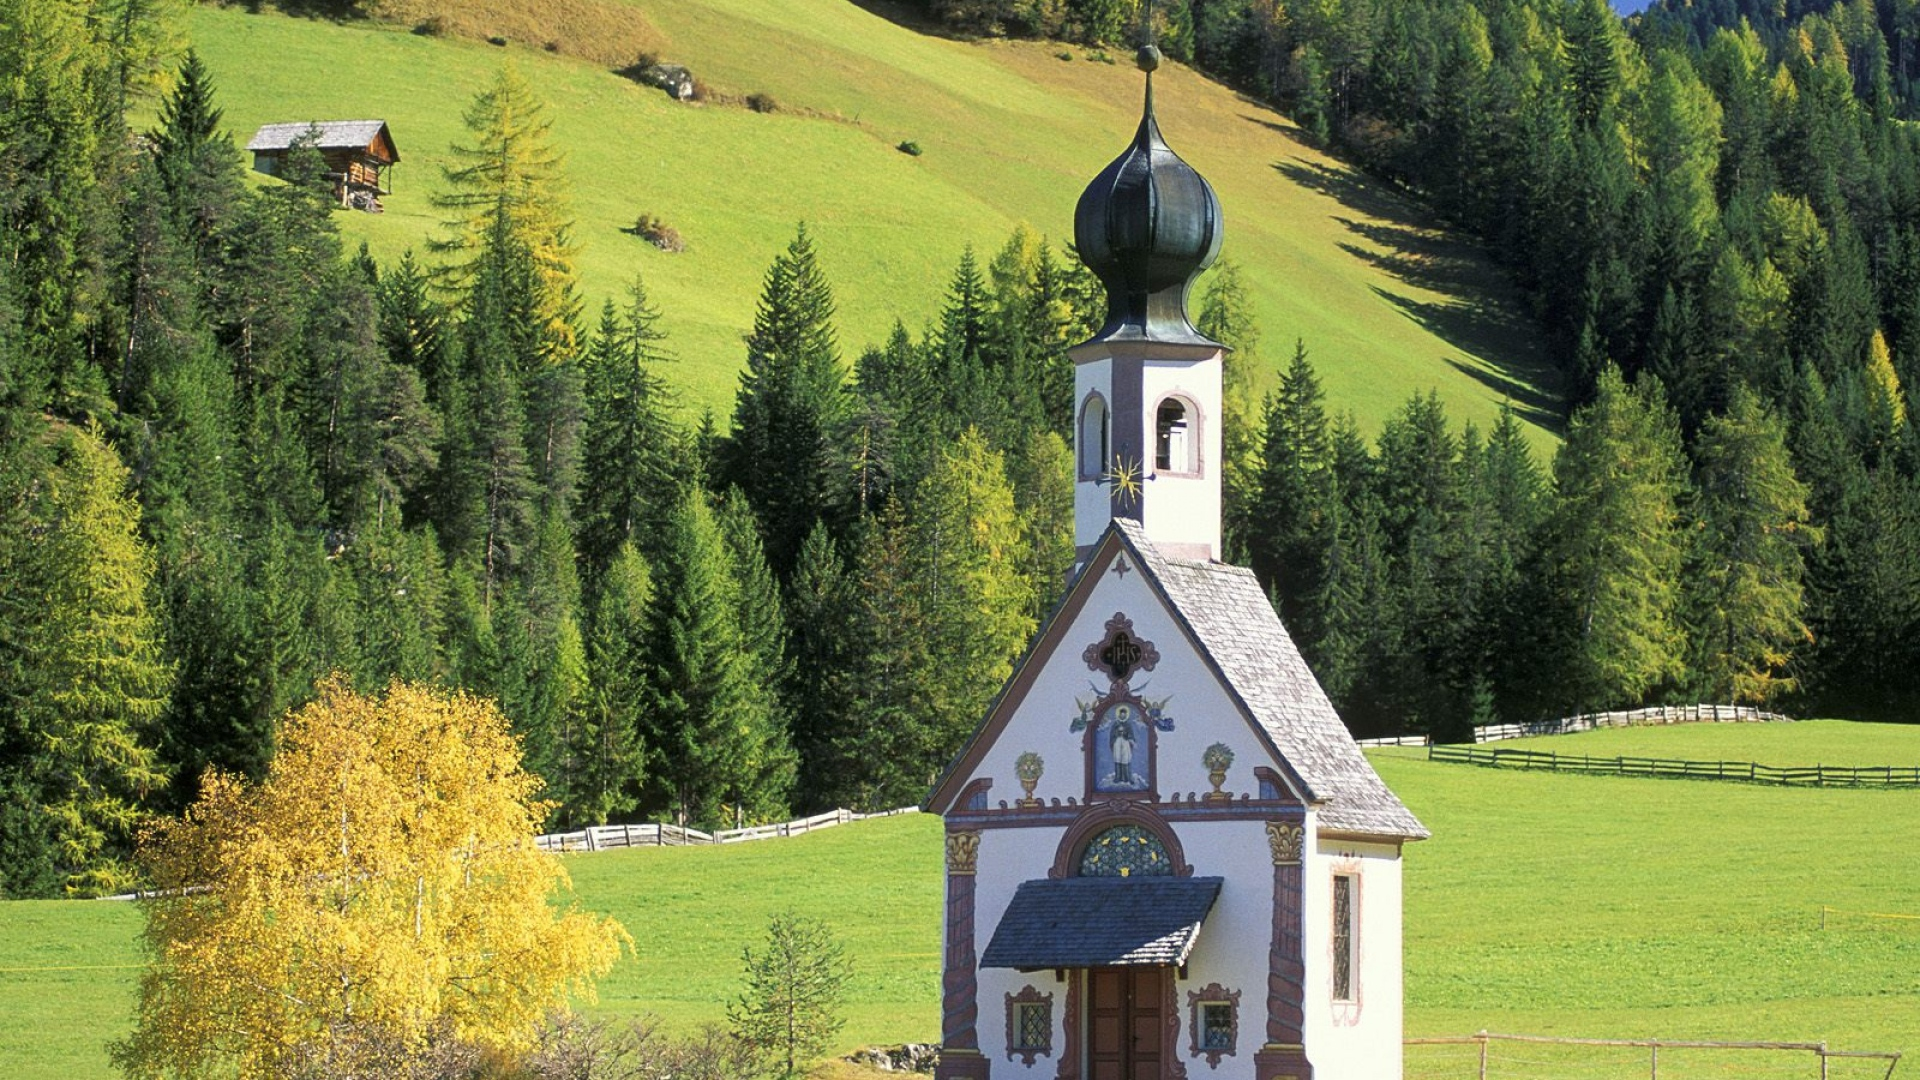 Download Wallpaper 1920x1080 Chapel, Dome, Mountains